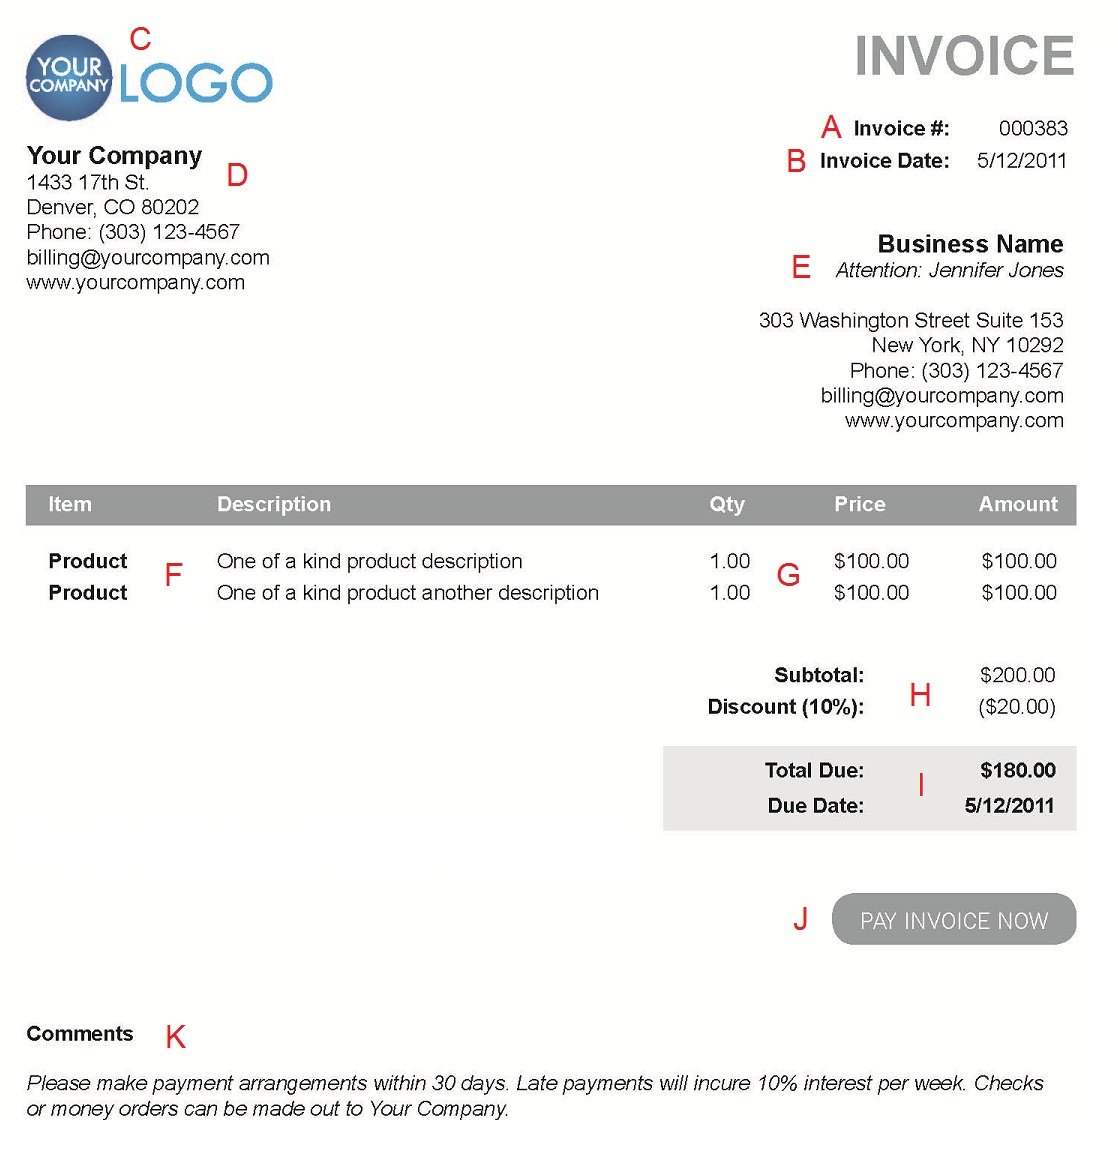 Usdgus  Outstanding The  Different Sections Of An Electronic Payment Invoice With Glamorous A  With Amusing Late Payment Of Invoices Also How To Make A Invoice Free In Addition Free Small Business Invoice Software And Export Invoice Sample As Well As Self Employed Invoice Template Uk Additionally Vat Number On Invoice From Paysimplecom With Usdgus  Glamorous The  Different Sections Of An Electronic Payment Invoice With Amusing A  And Outstanding Late Payment Of Invoices Also How To Make A Invoice Free In Addition Free Small Business Invoice Software From Paysimplecom